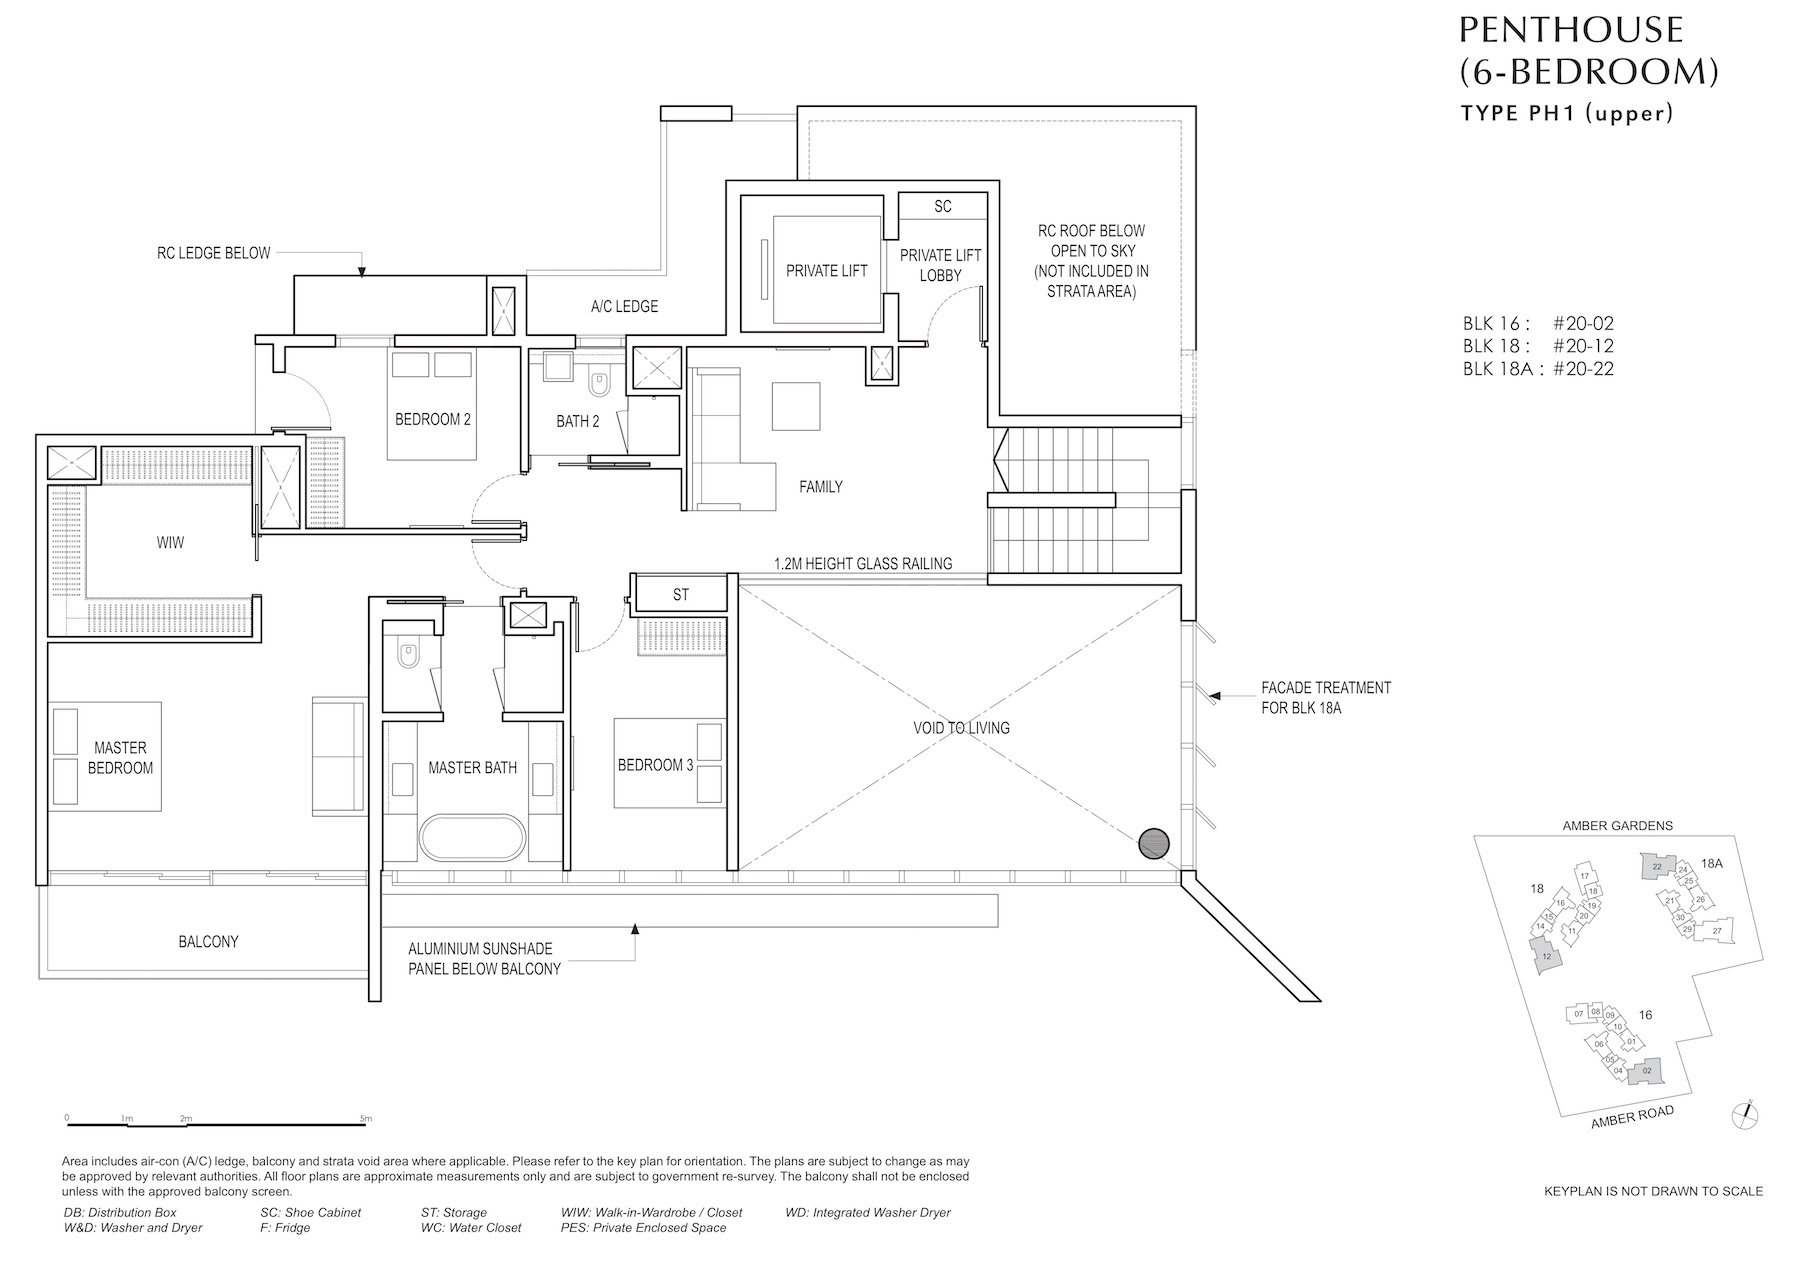 Amber Park 安铂苑 floor plan 6 bedroom penthouse 6卧房复式顶层PH1 upper